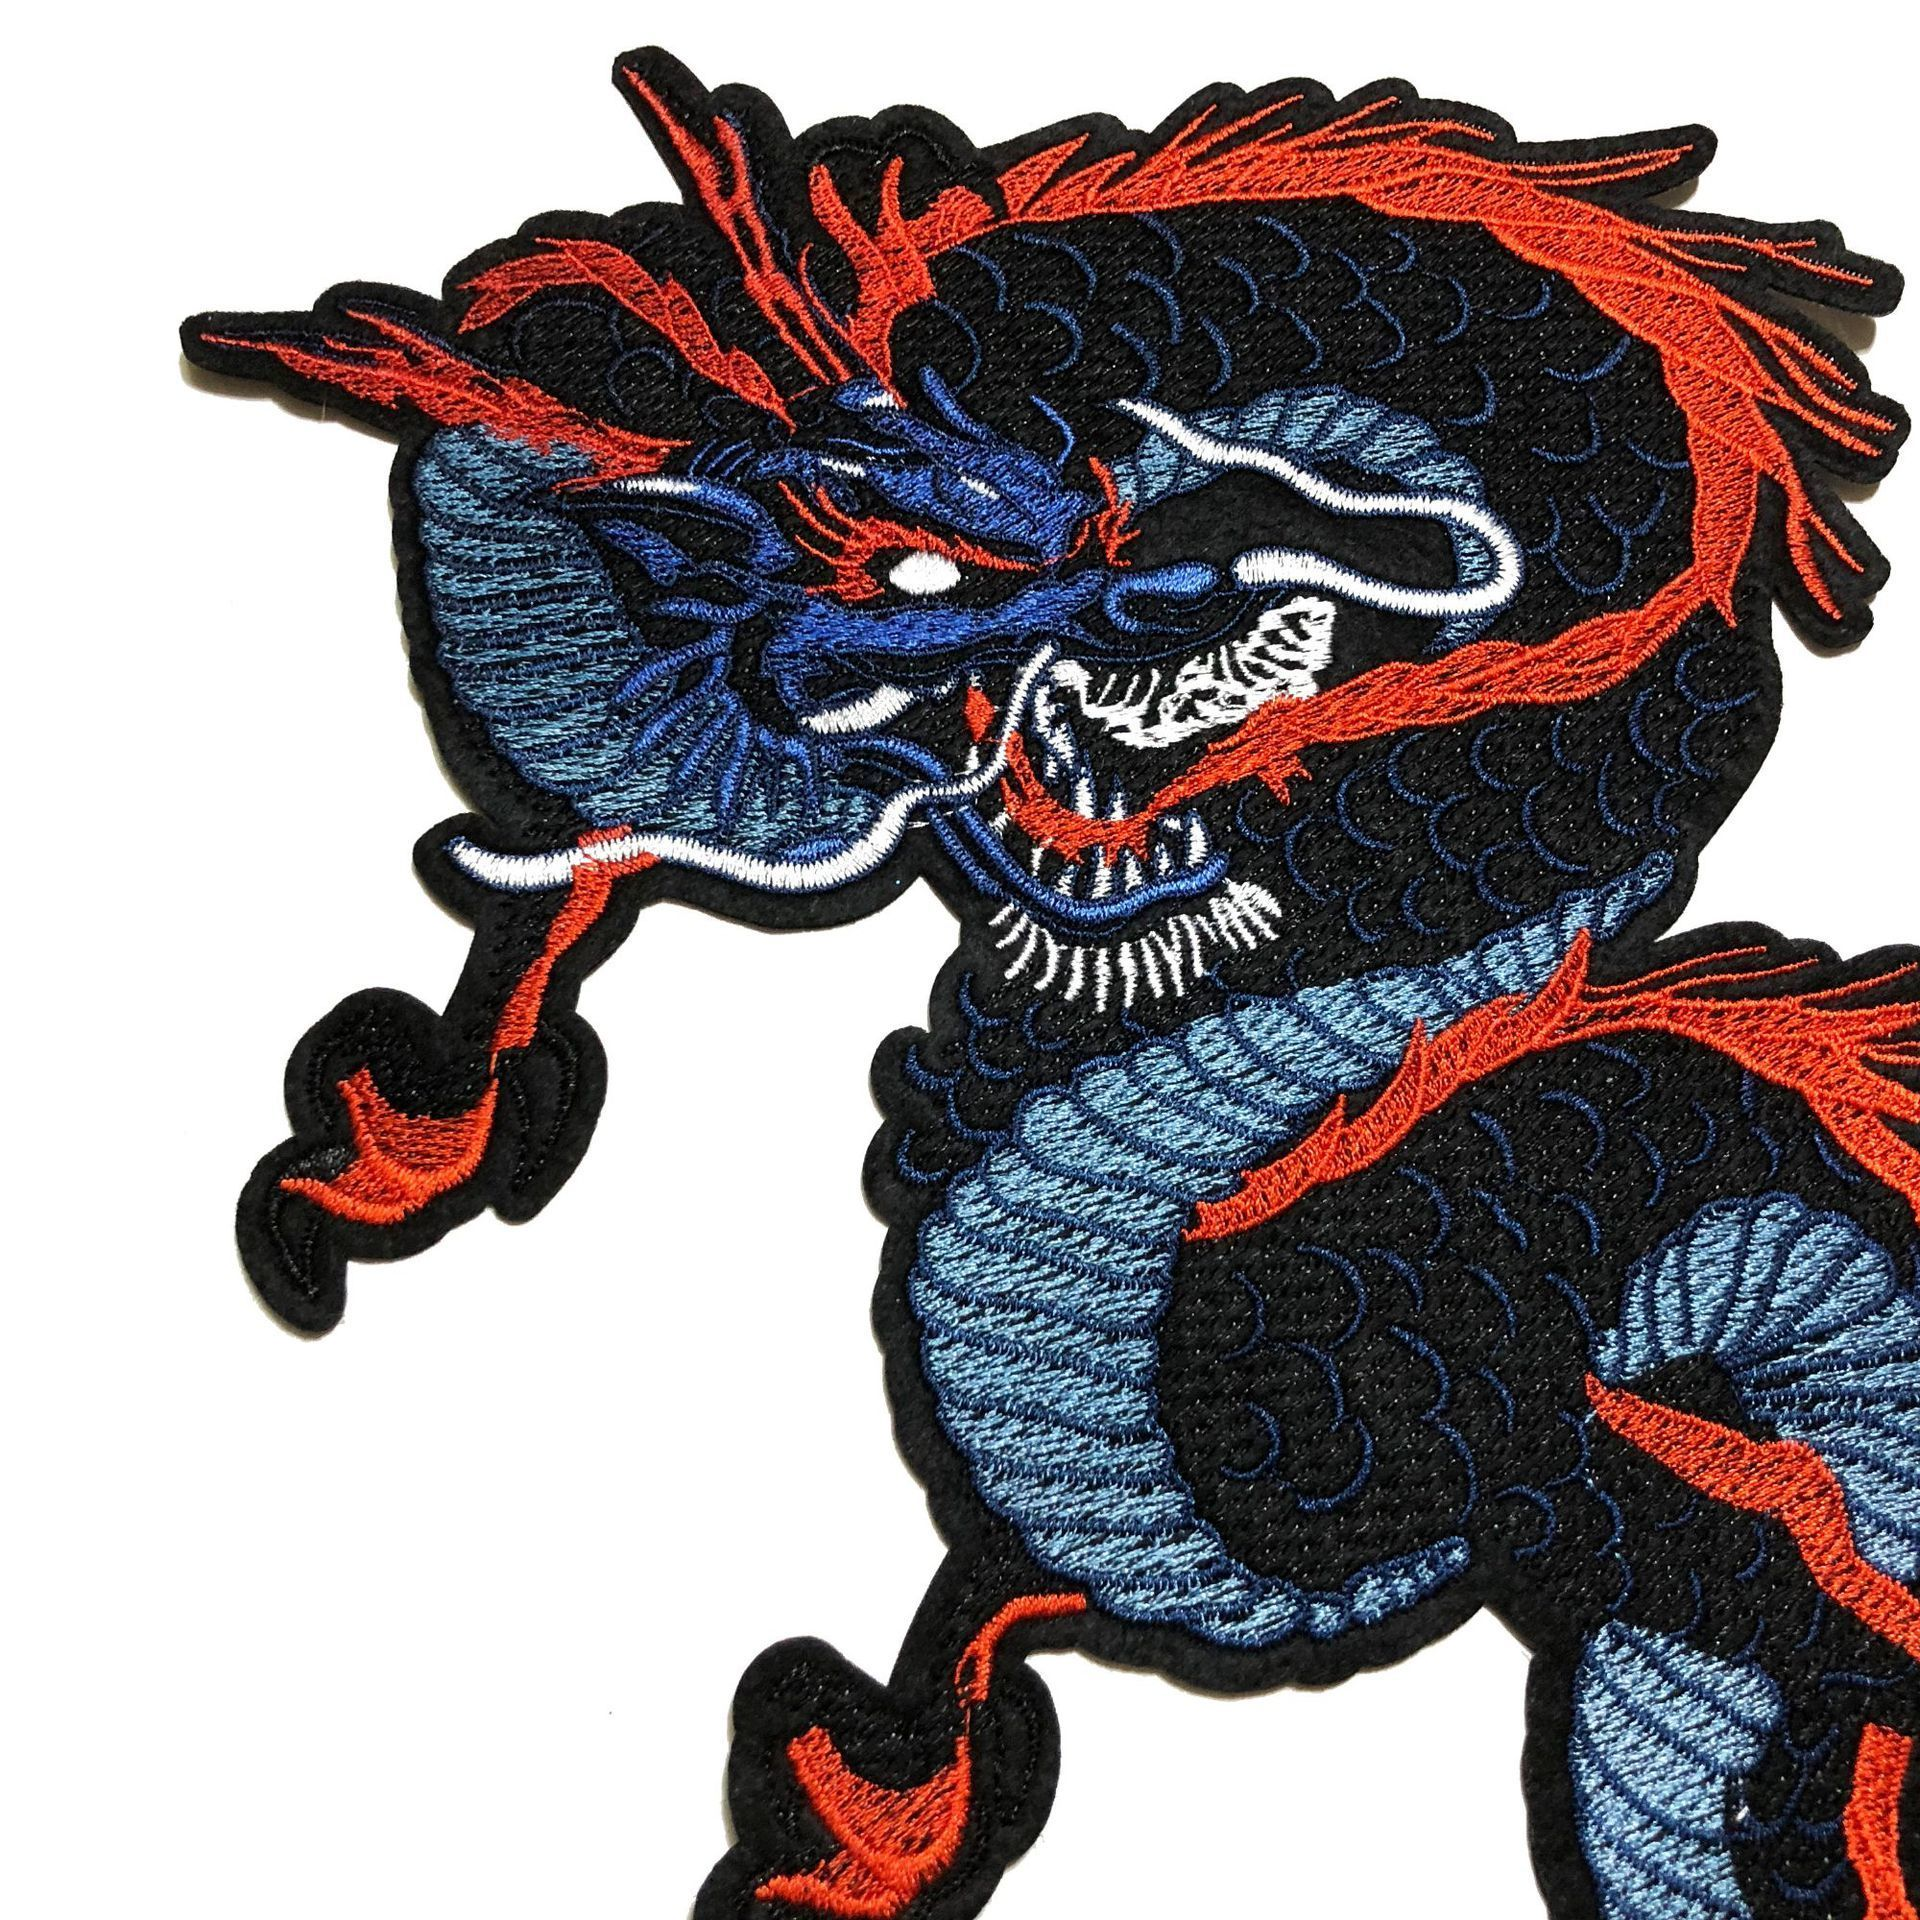 1PCS Chinese Style Animal Exquisite Black Dragon Embroidery <font><b>Patch</b></font> Clothes Applique for T-shirt Clothing Accessory <font><b>coat</b></font> <font><b>Patch</b></font> image